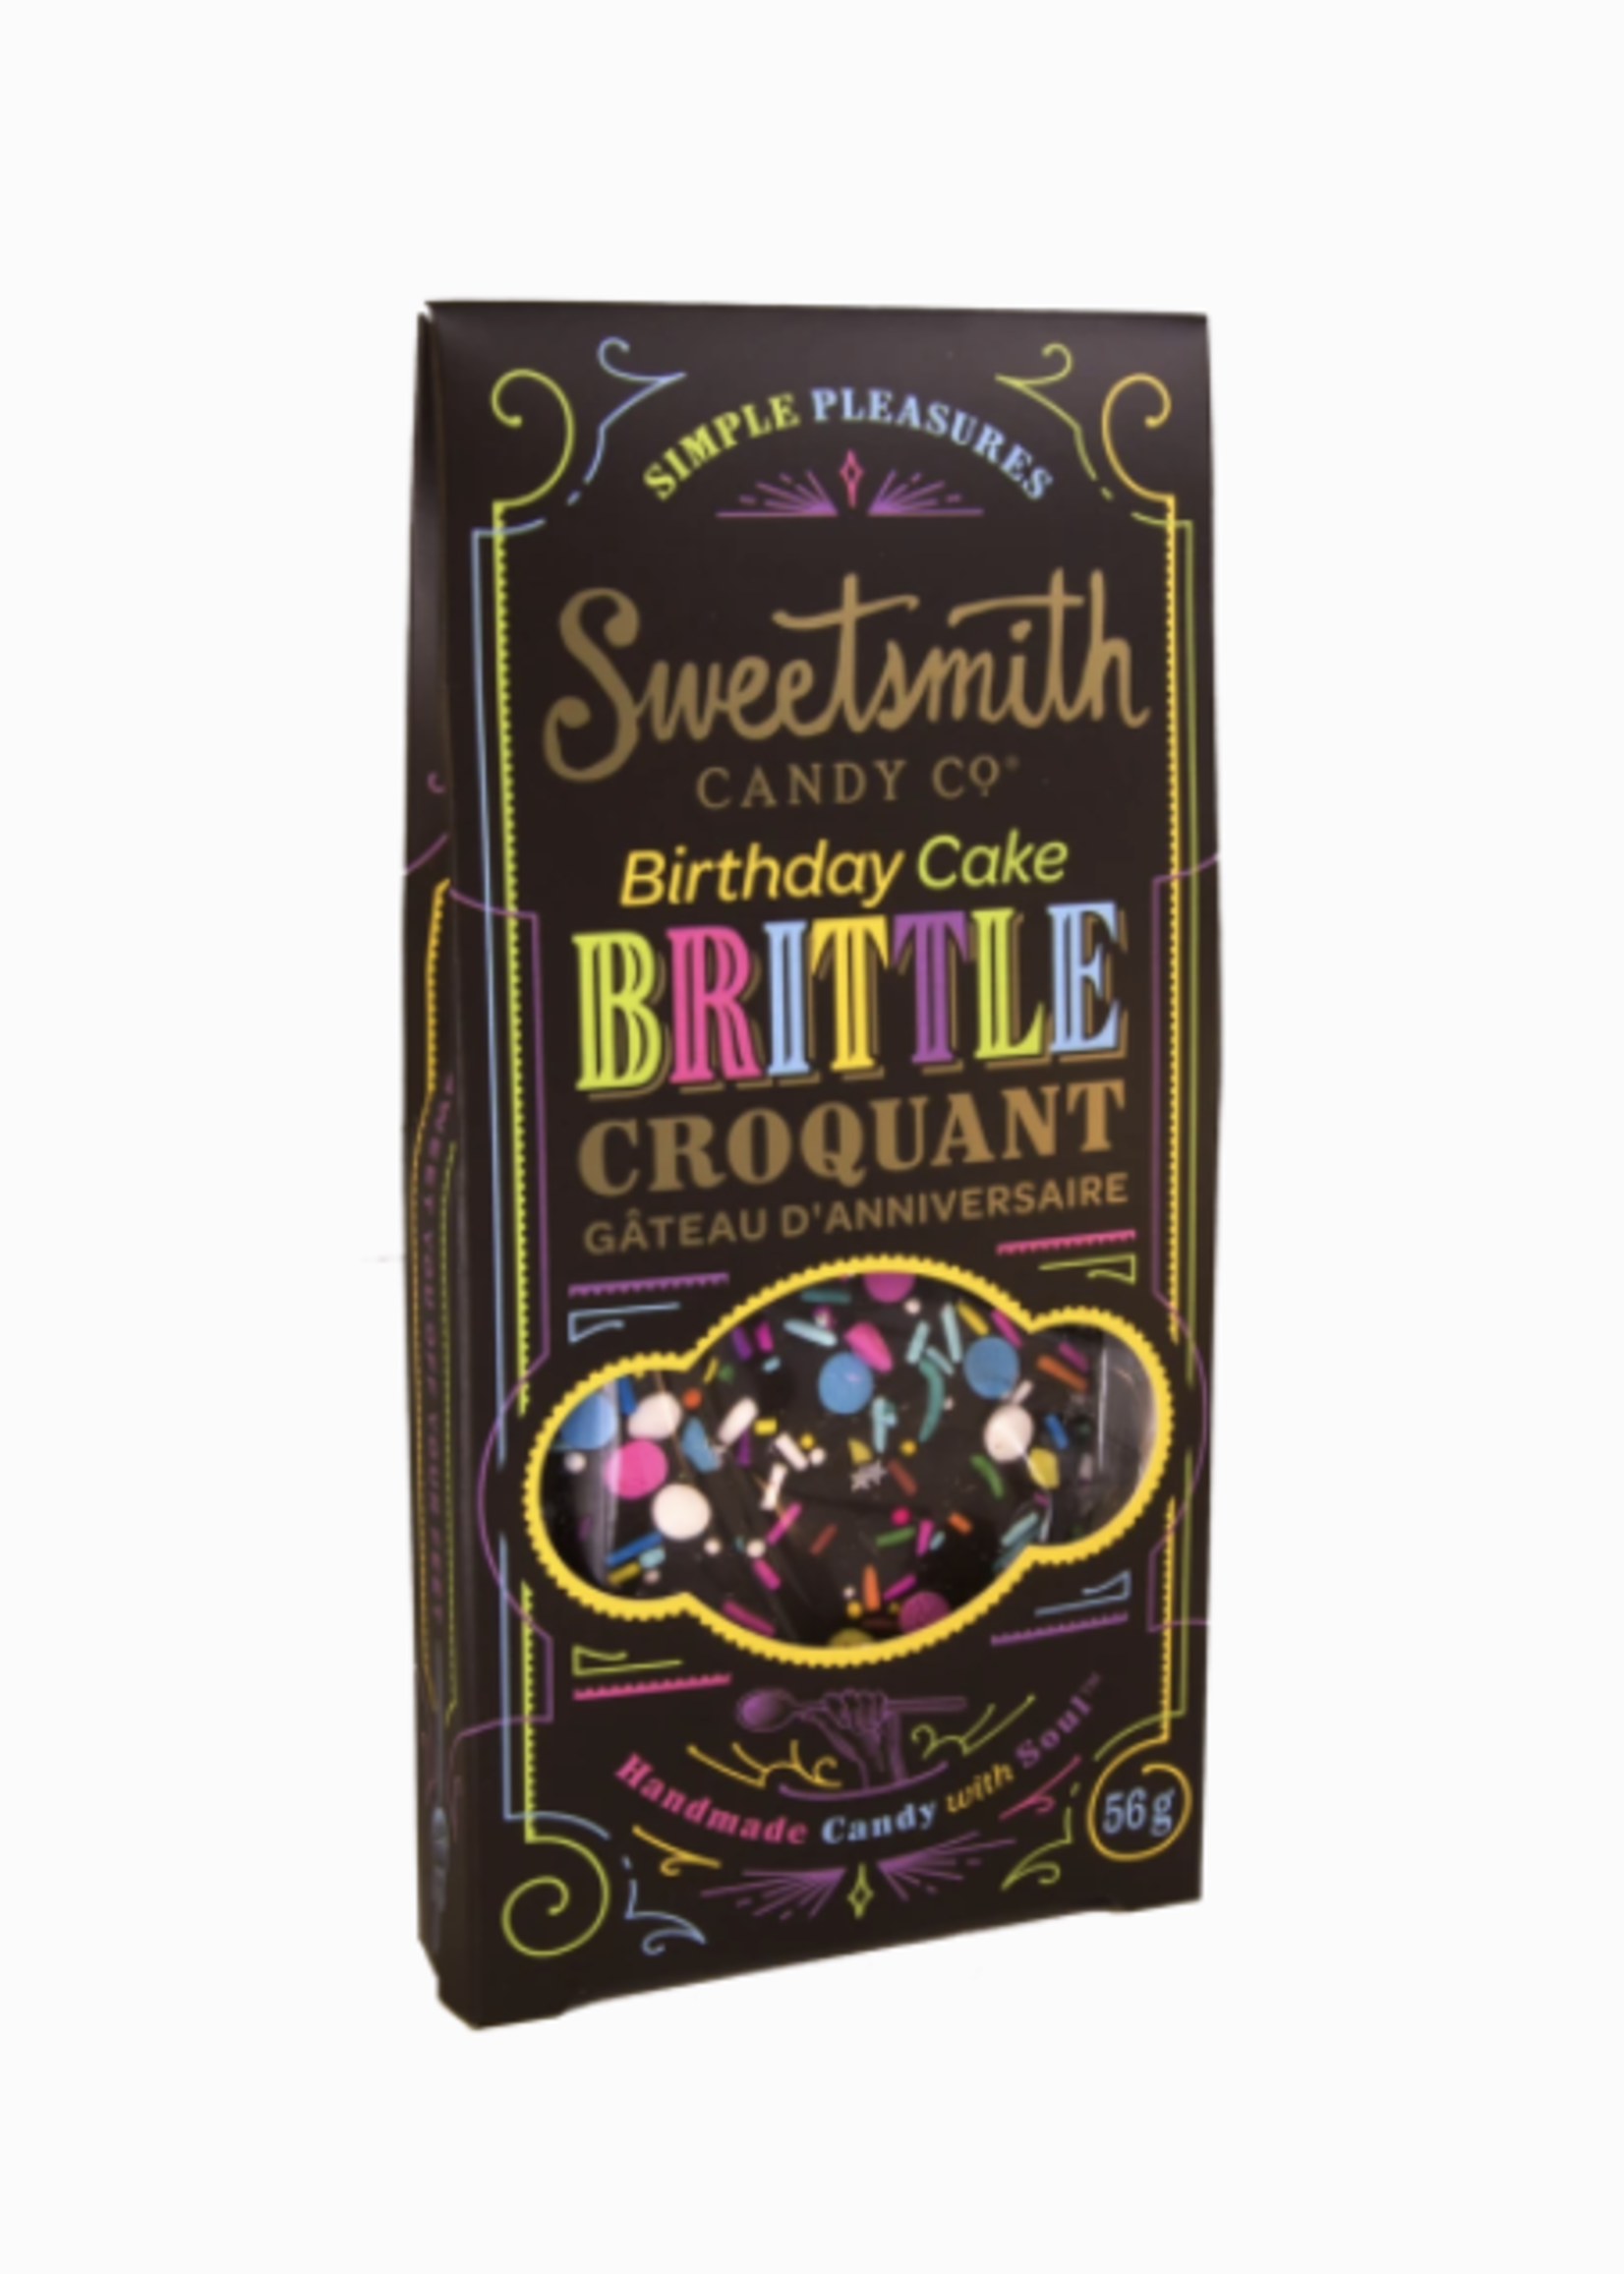 Sweetsmith Candy Co. Chocolate Birthday Cake Brittle